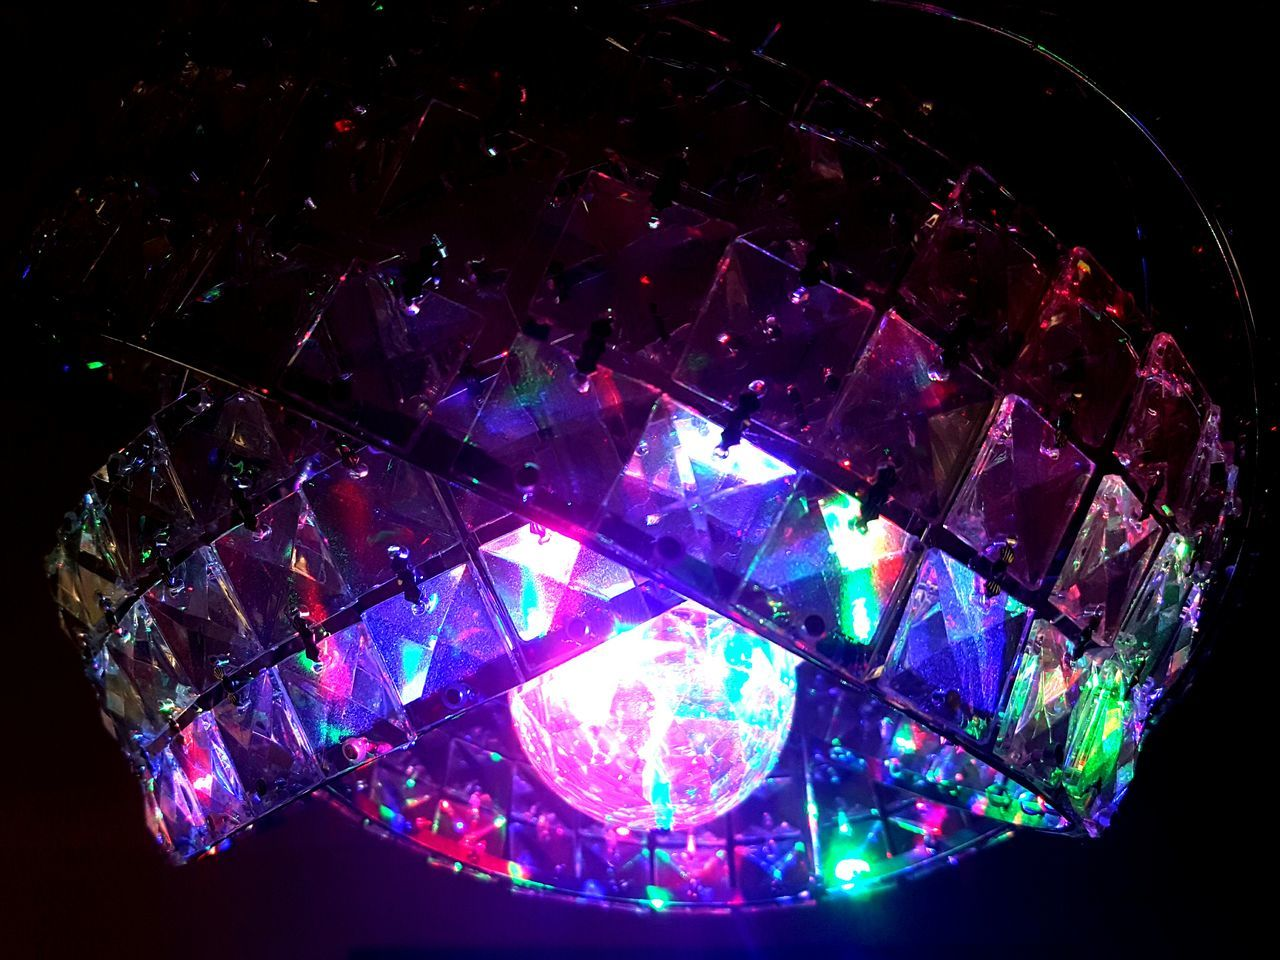 Tricked out light fixture Shiny Illuminated No People Luminosity Interior Pattern Light Festive Season Refraction Close-up Colored Background Disco Colors Colours Living Room Fixture Fixture And Fittings